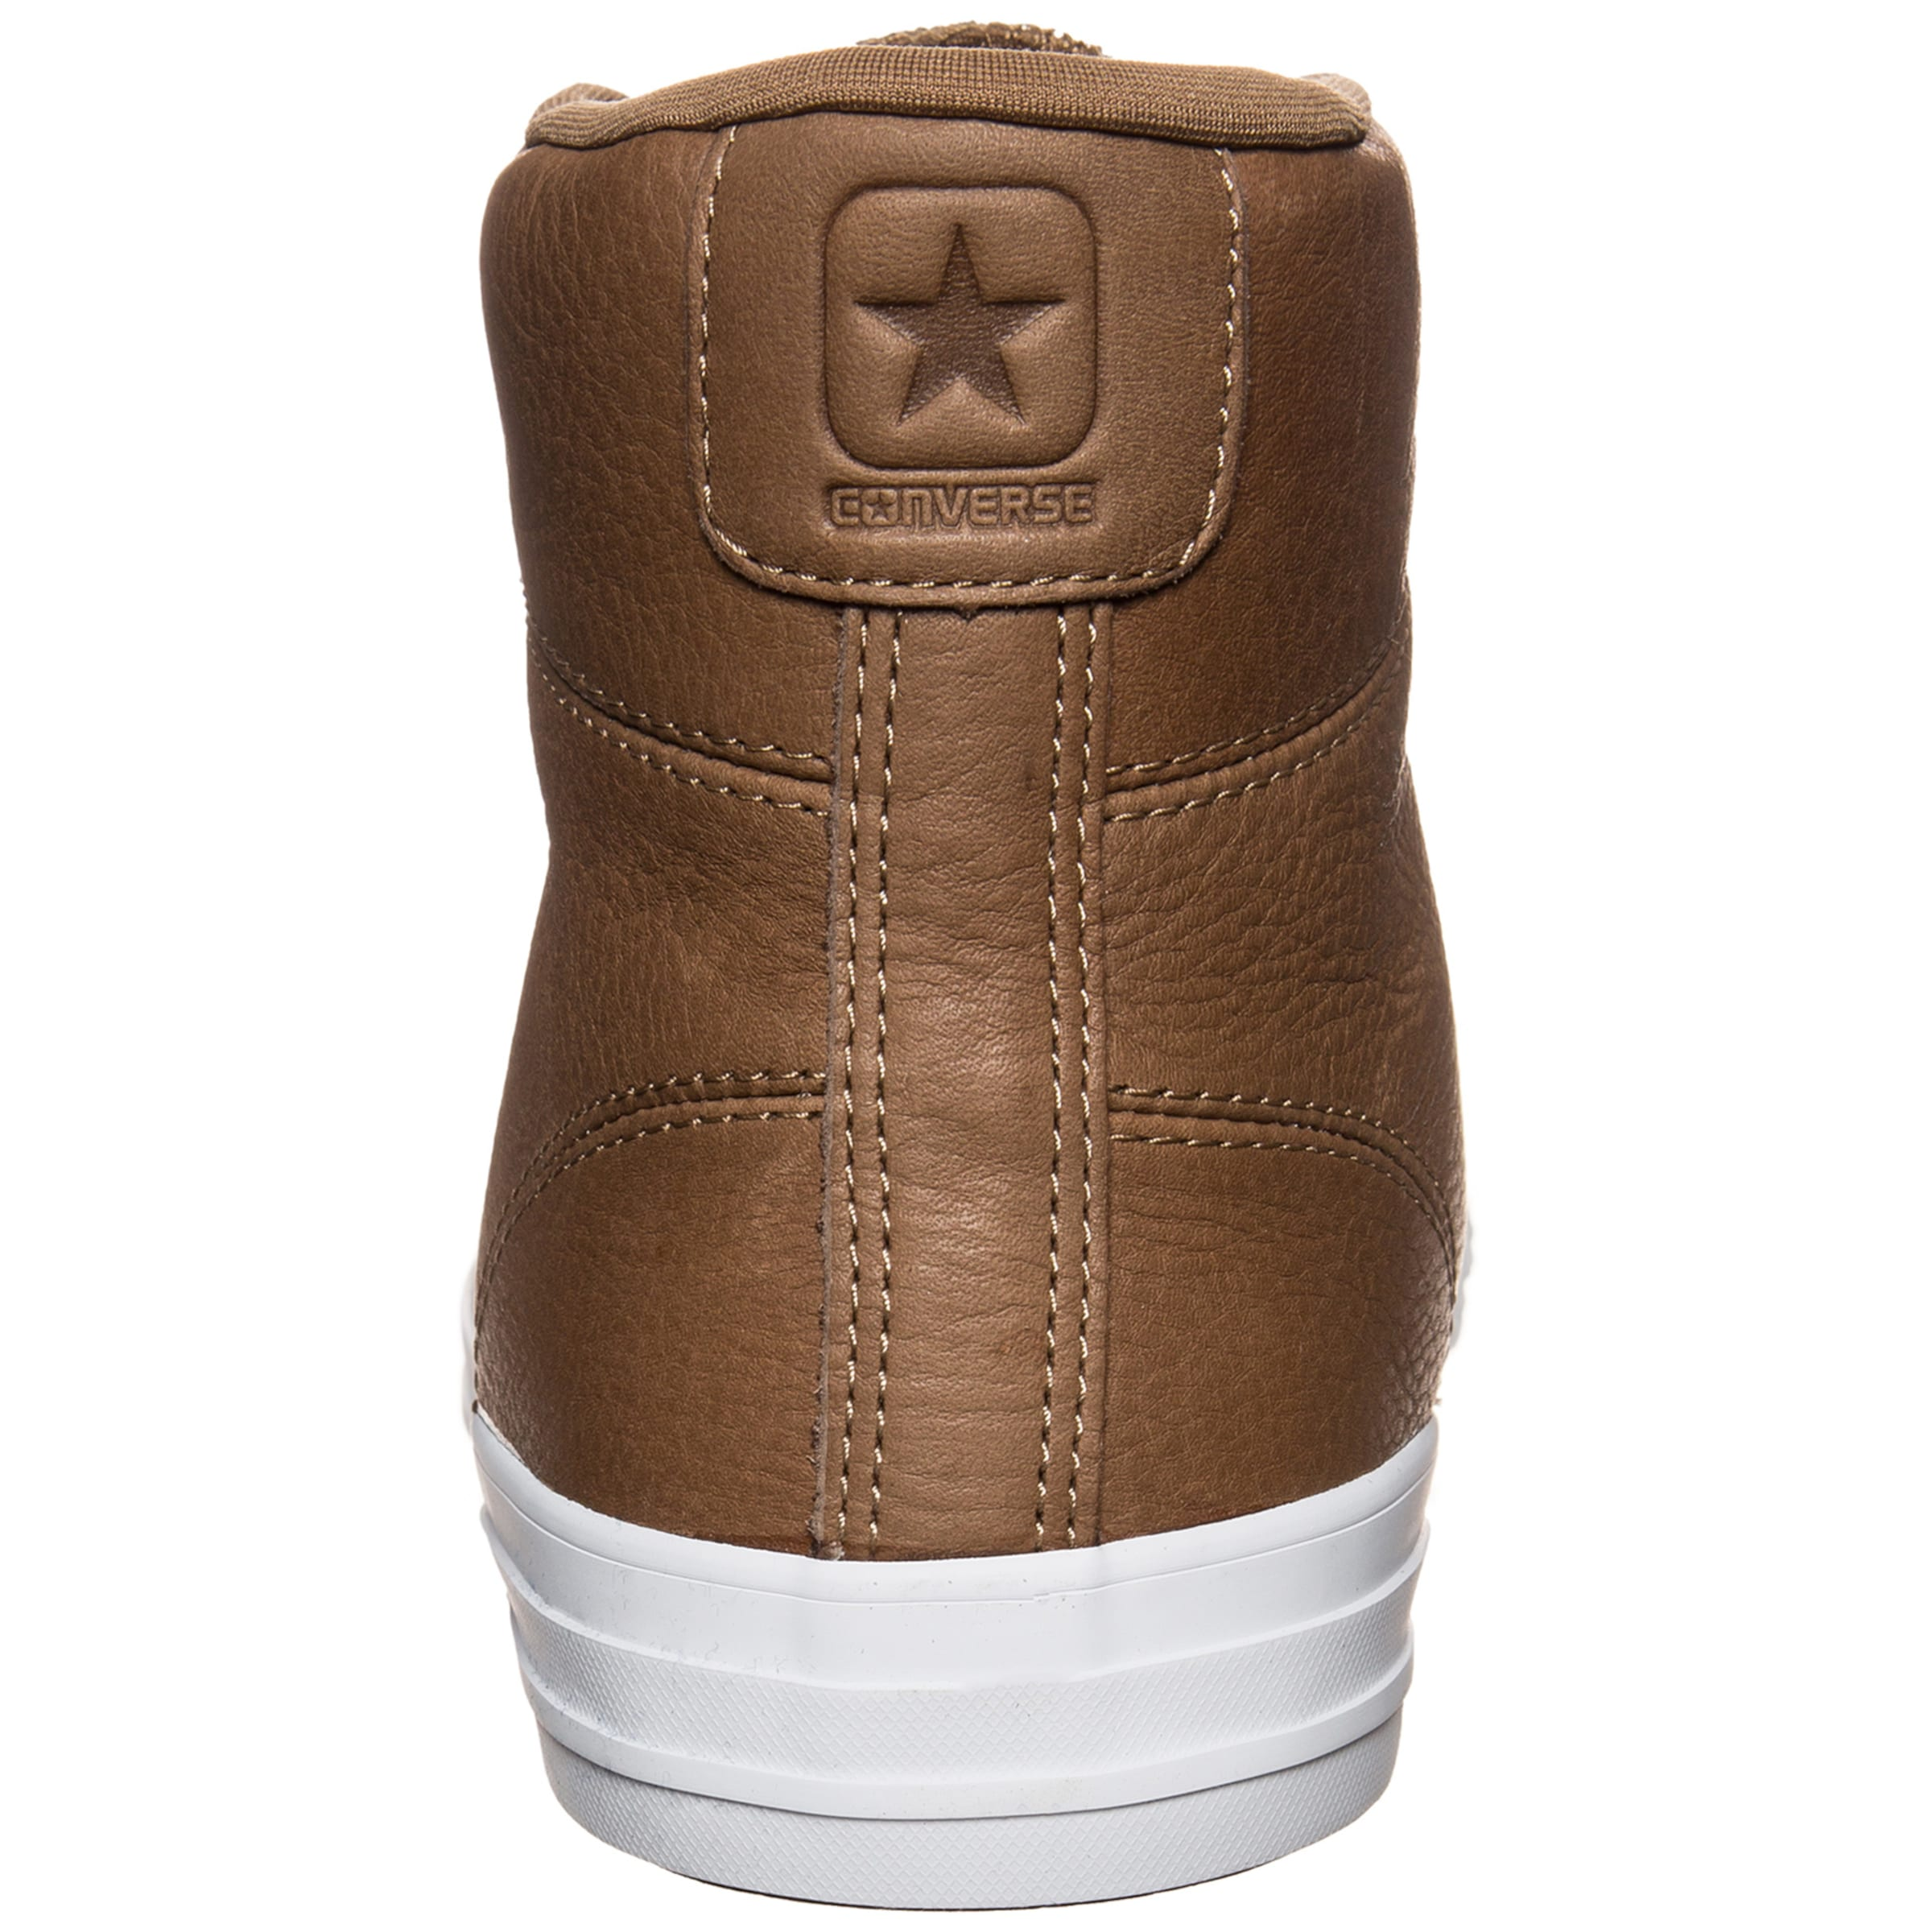 Star Converse Player Sneaker In BraunWeißmeliert High OPX8n0kNZw